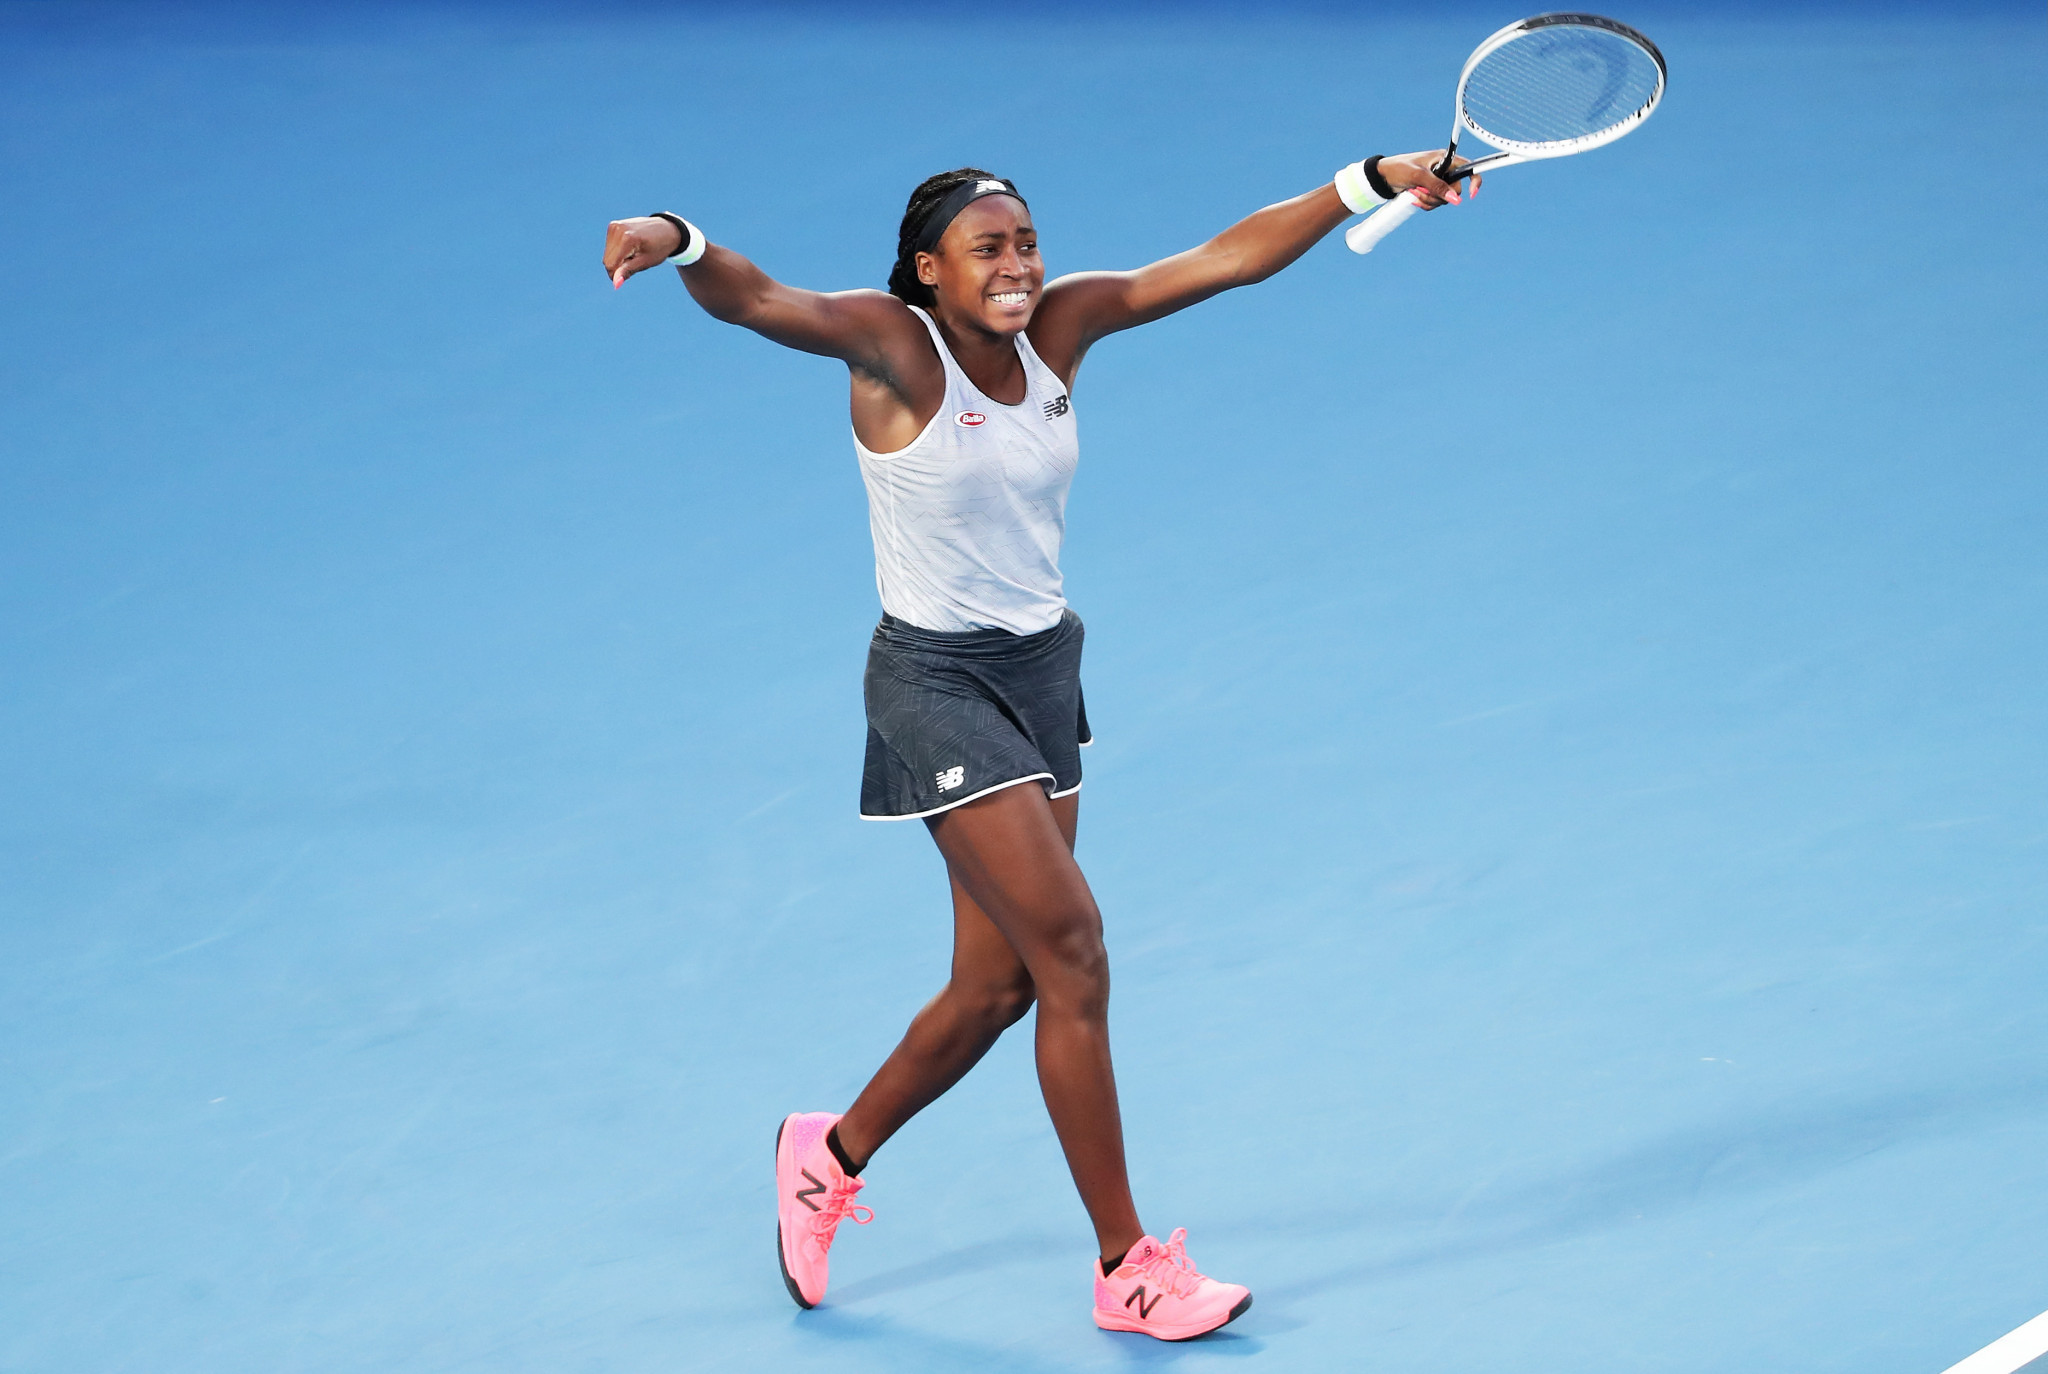 Day of shocks, as Osaka and Williams both fall at Australian Open